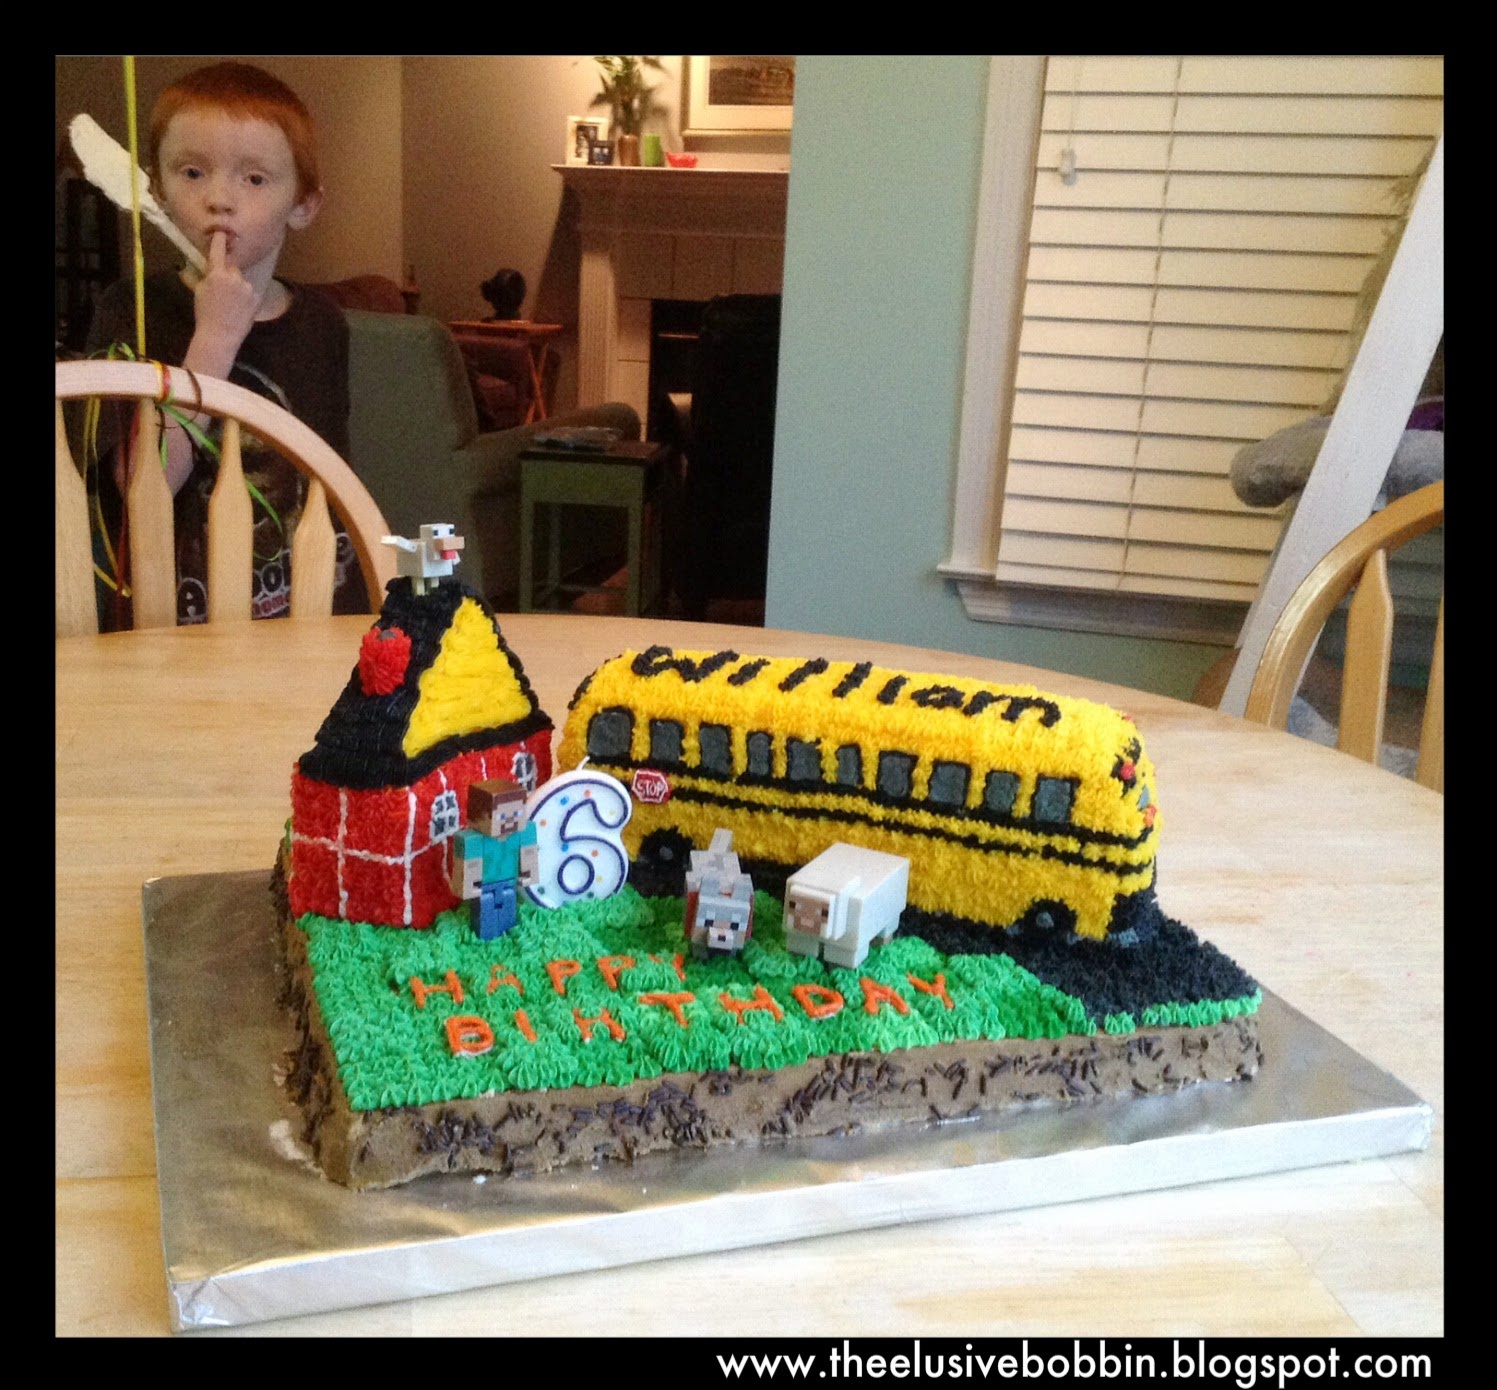 The Elusive Bobbin Fff Minecraft Bus Birthday Cake